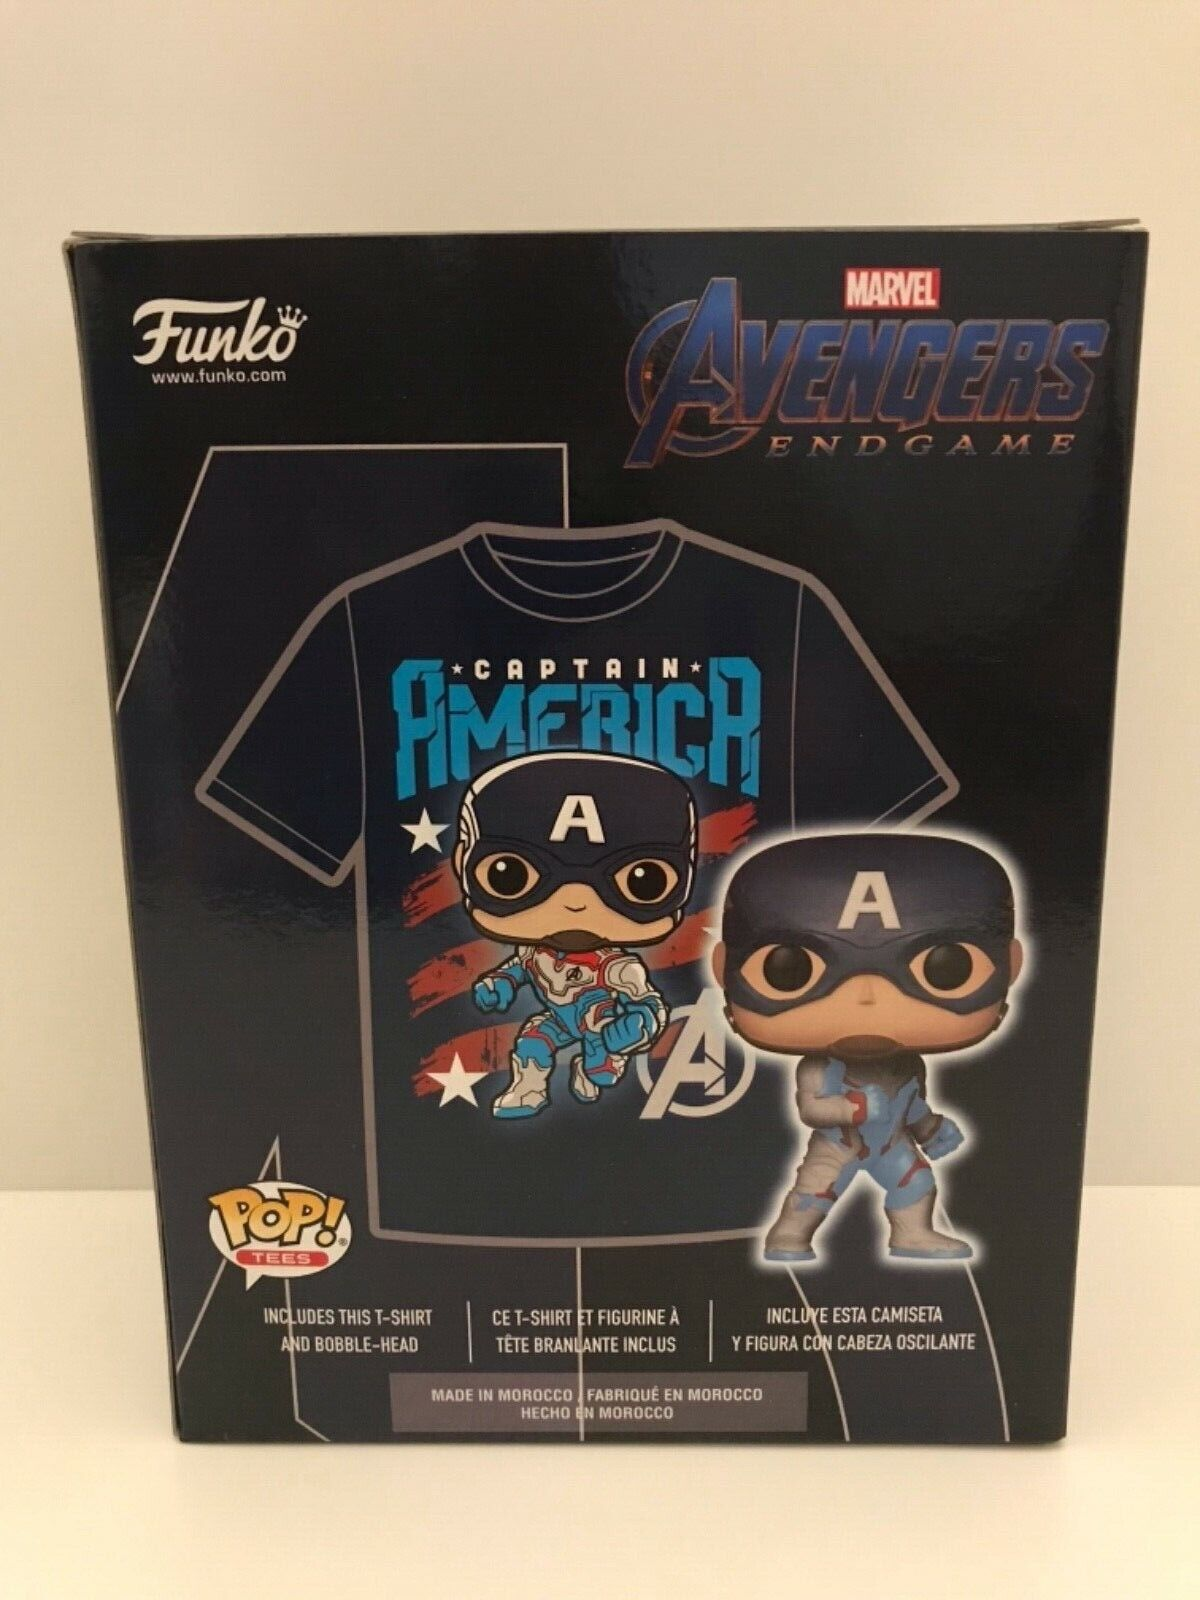 Captain America Funko Pop London MCM Comic Con Exclusive With Large T-shirt